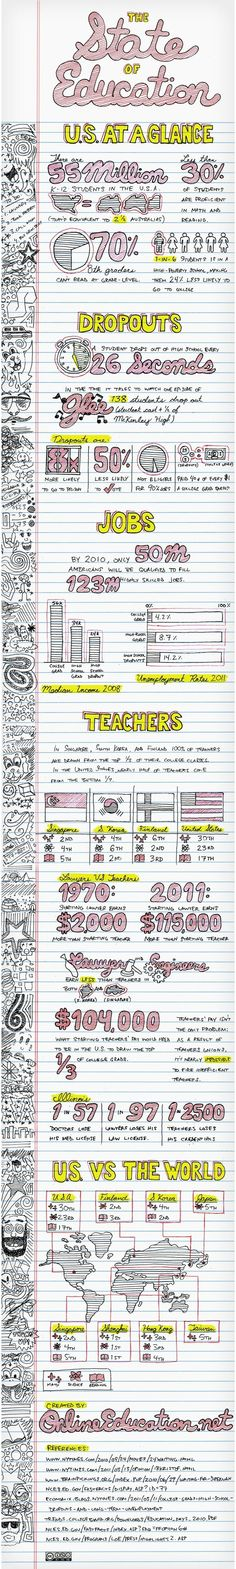 The State of Education by roseann  Interesting Facts About Education!